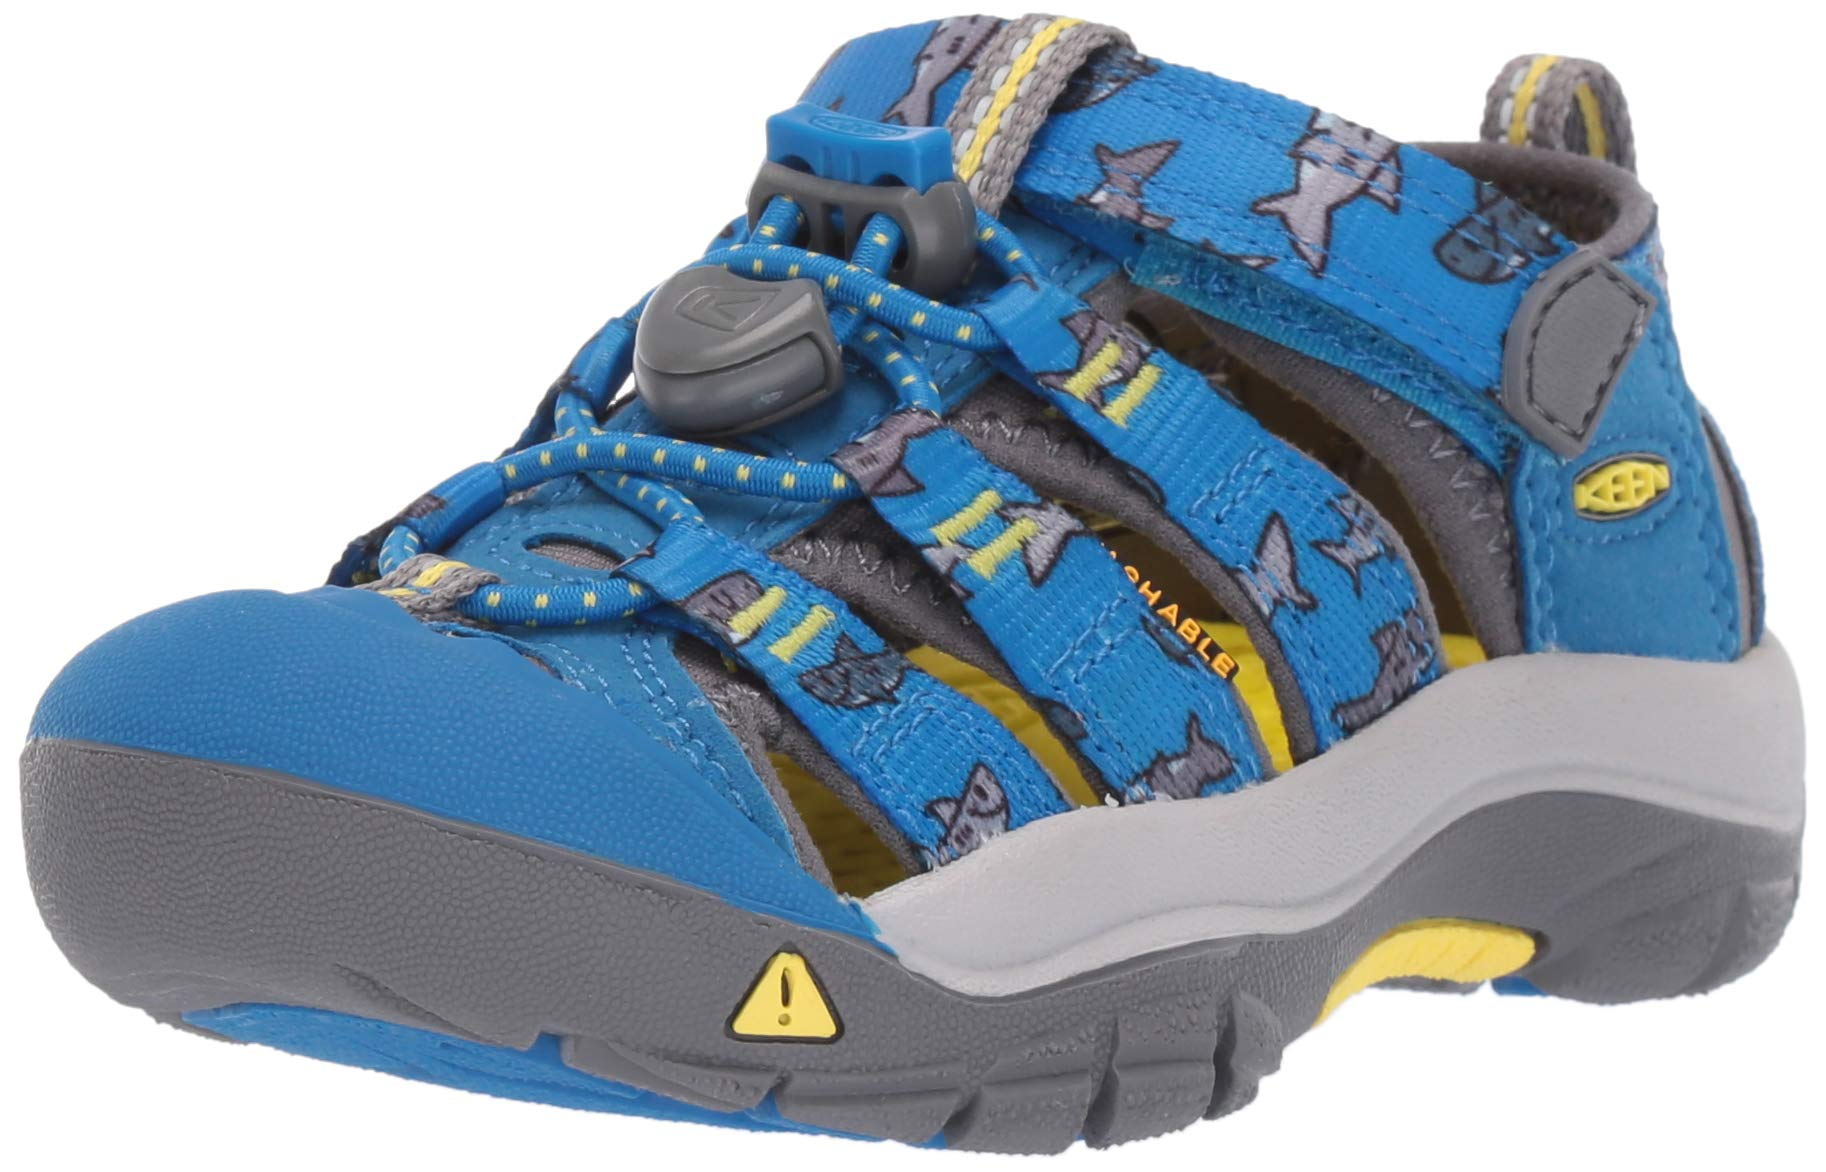 Keen Baby Newport H2 Water Shoe Vibrant Blue Sharks 7 M US Toddler